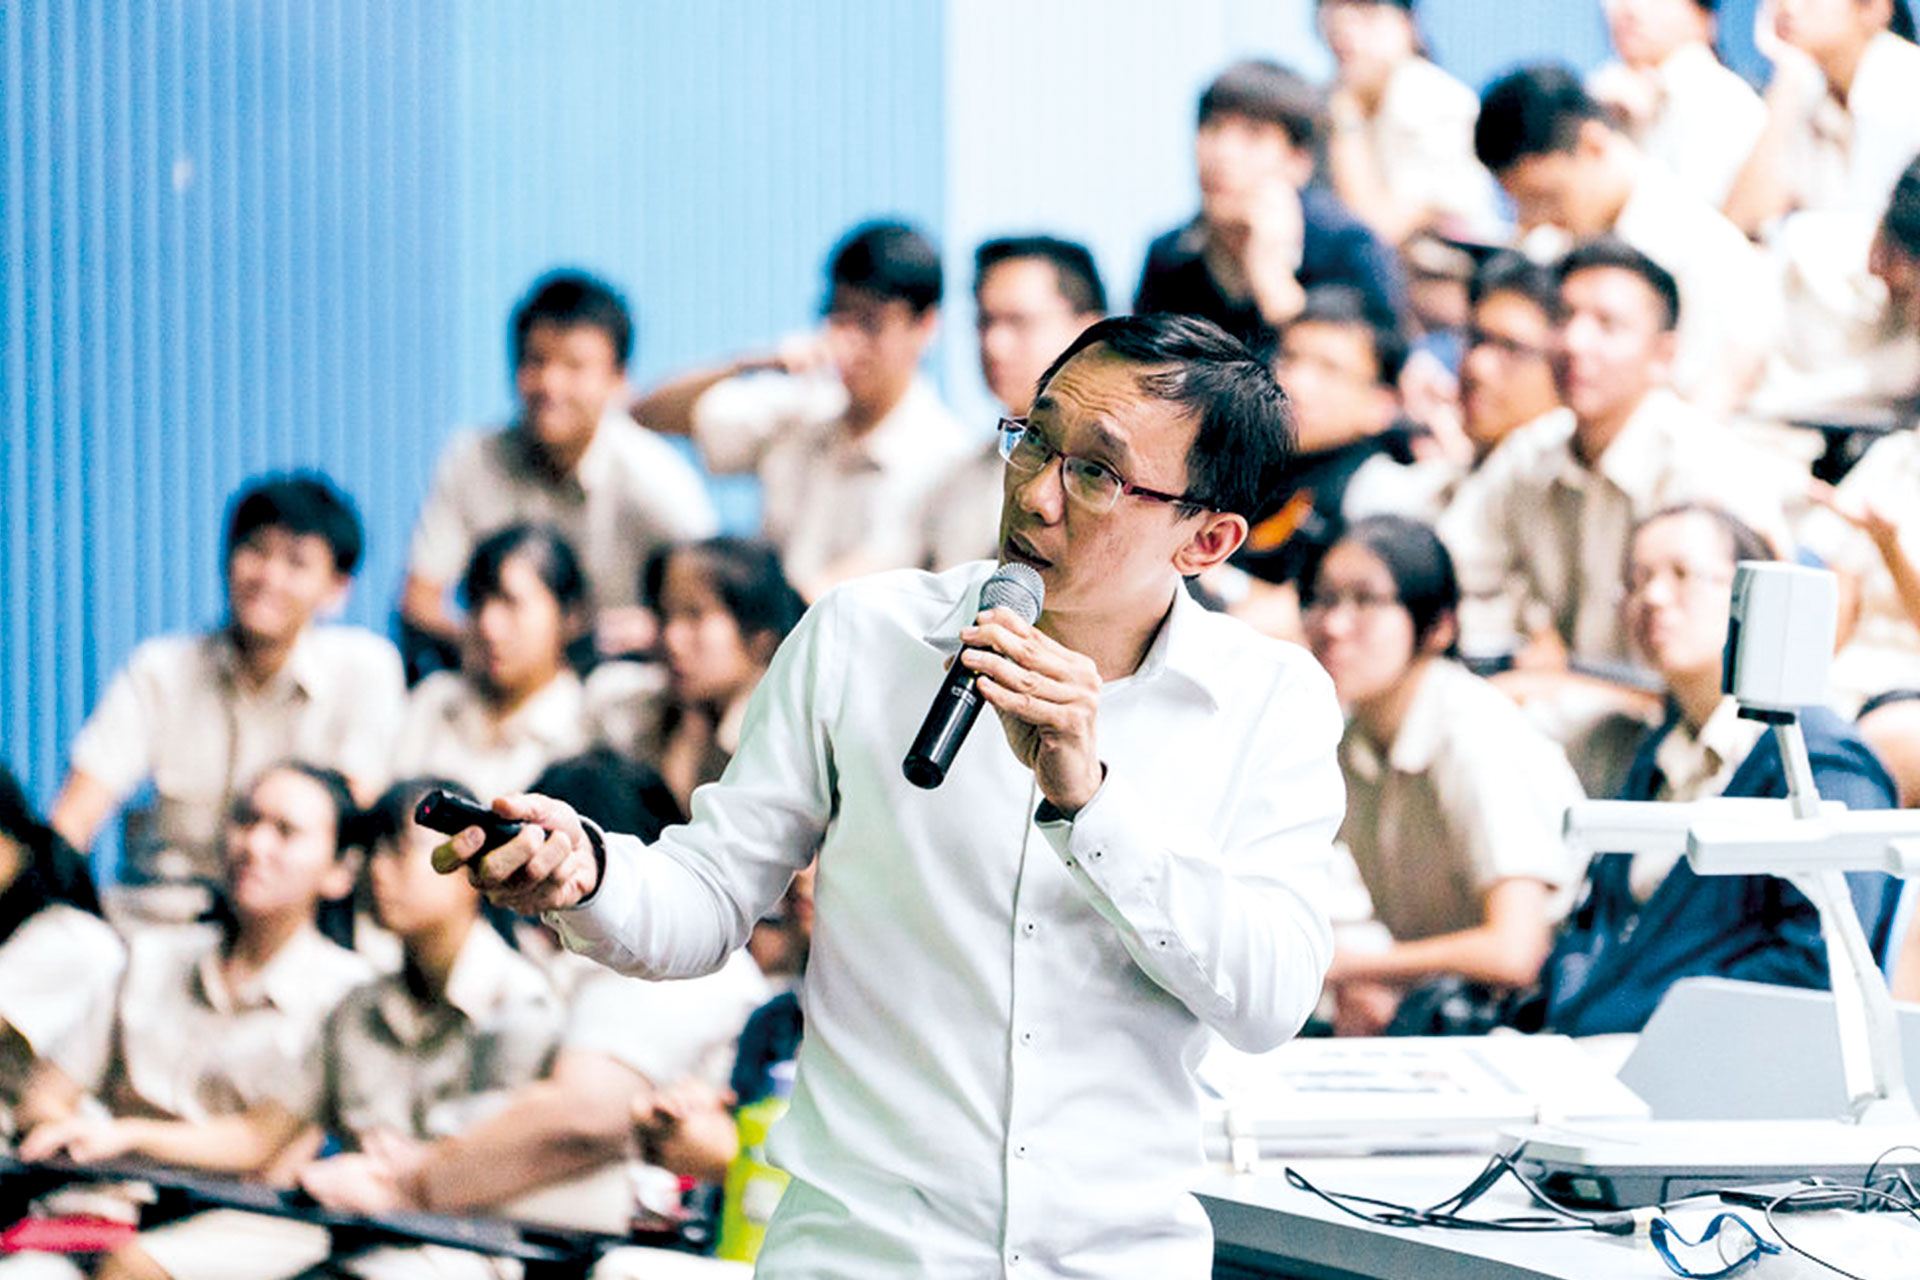 Mr Poh regularly conducts cyber wellness courses in schools.